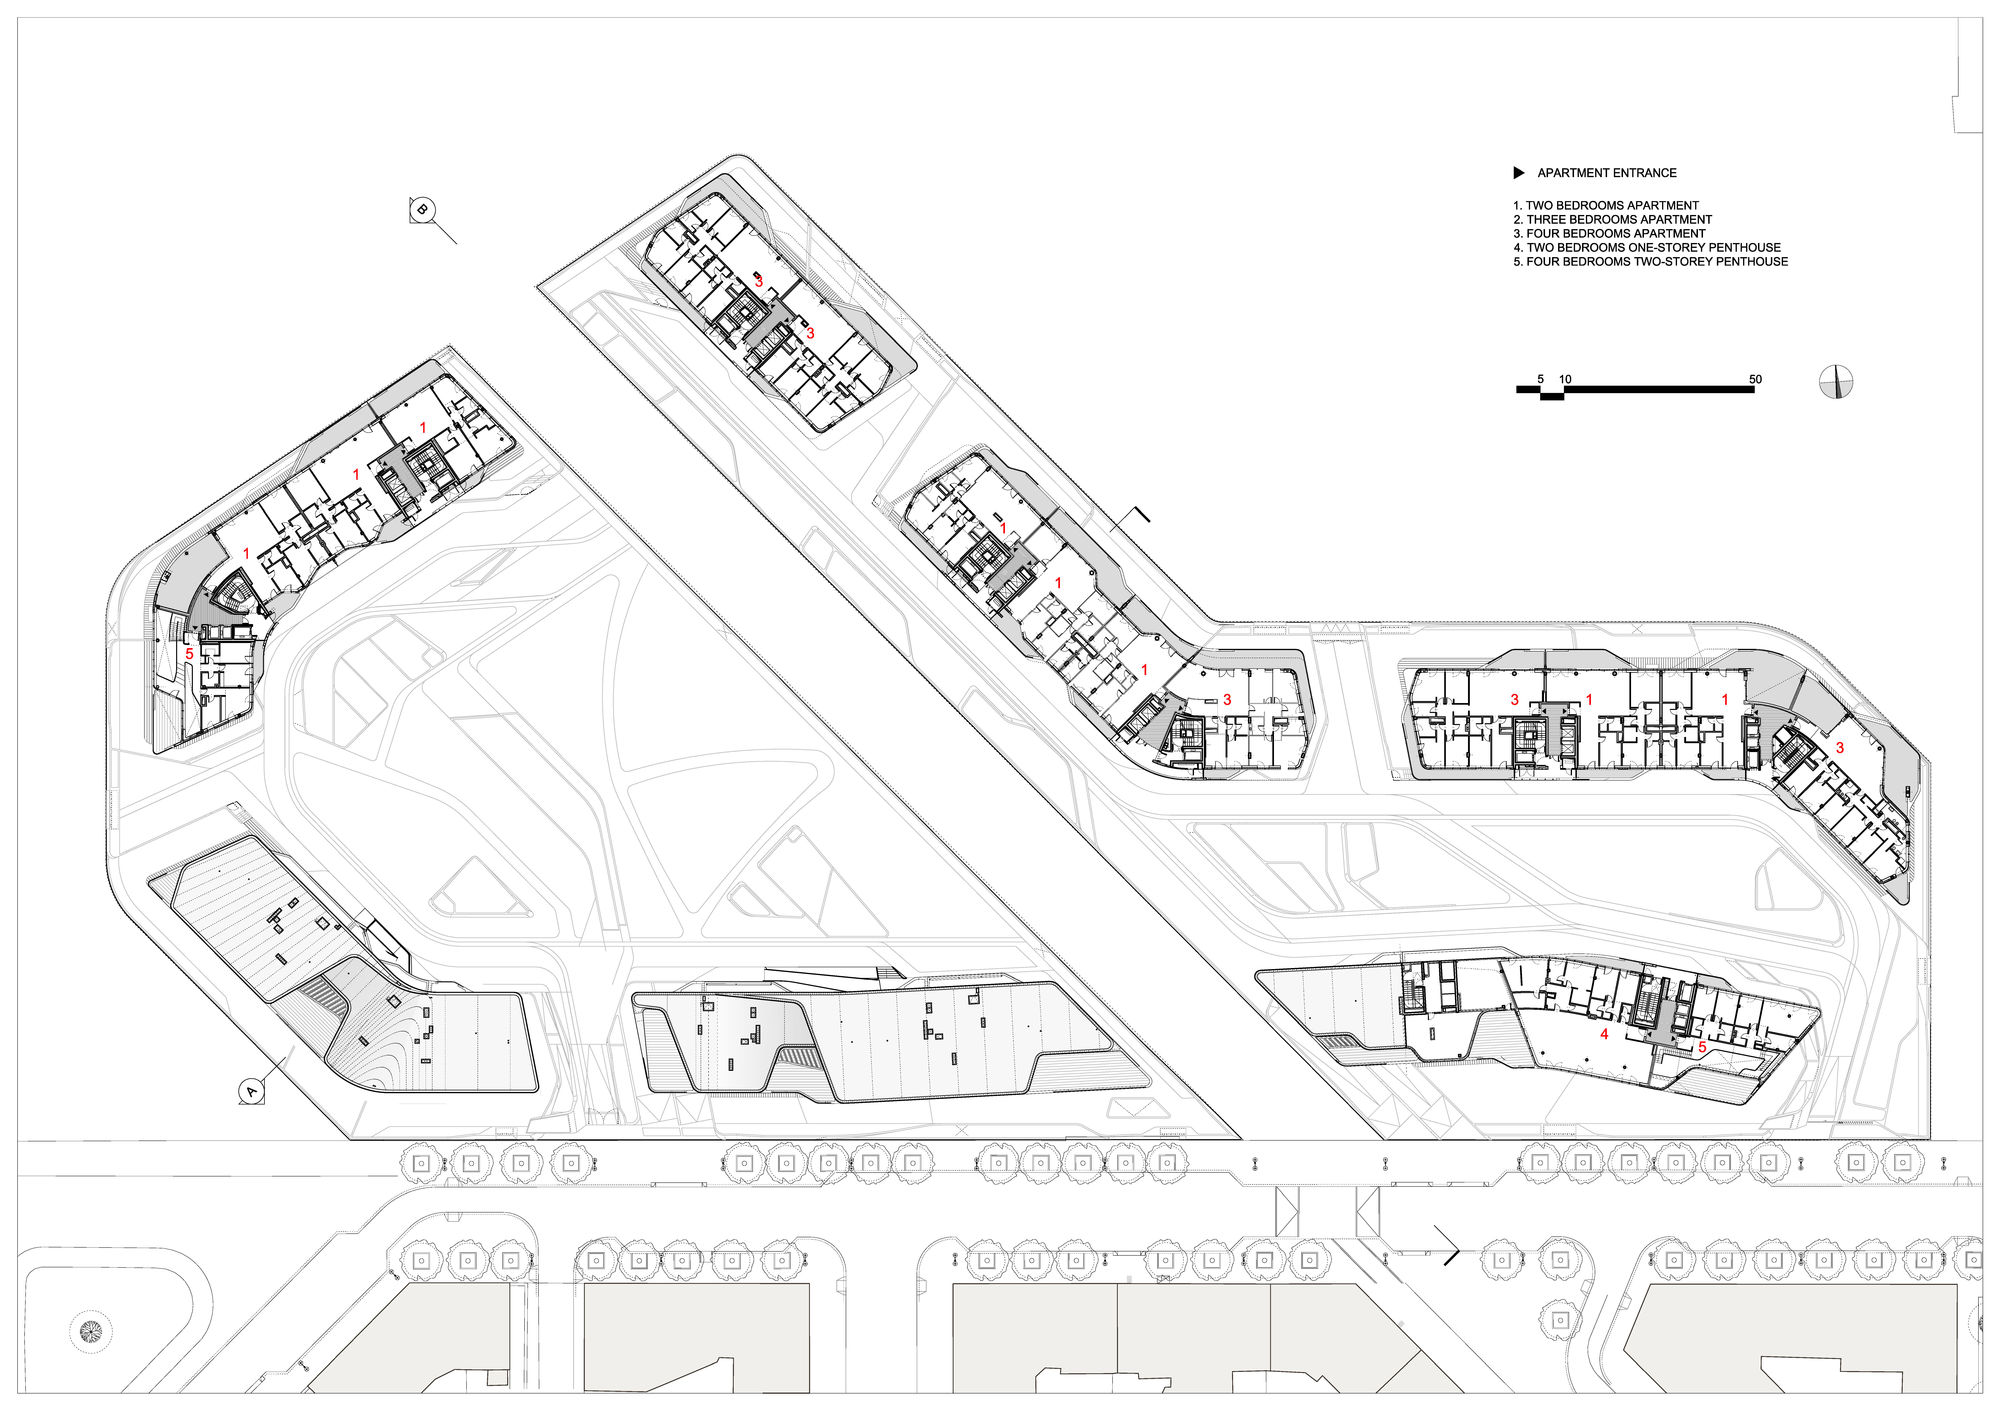 gallery p with 57065a1ee58ece671800018a Citylife Apartments Zaha Hadid Architects Floor Plan on Swan Coloring 02 also  also 96 Skowronek in addition Horse Coloring 03 moreover Instant product gallery.